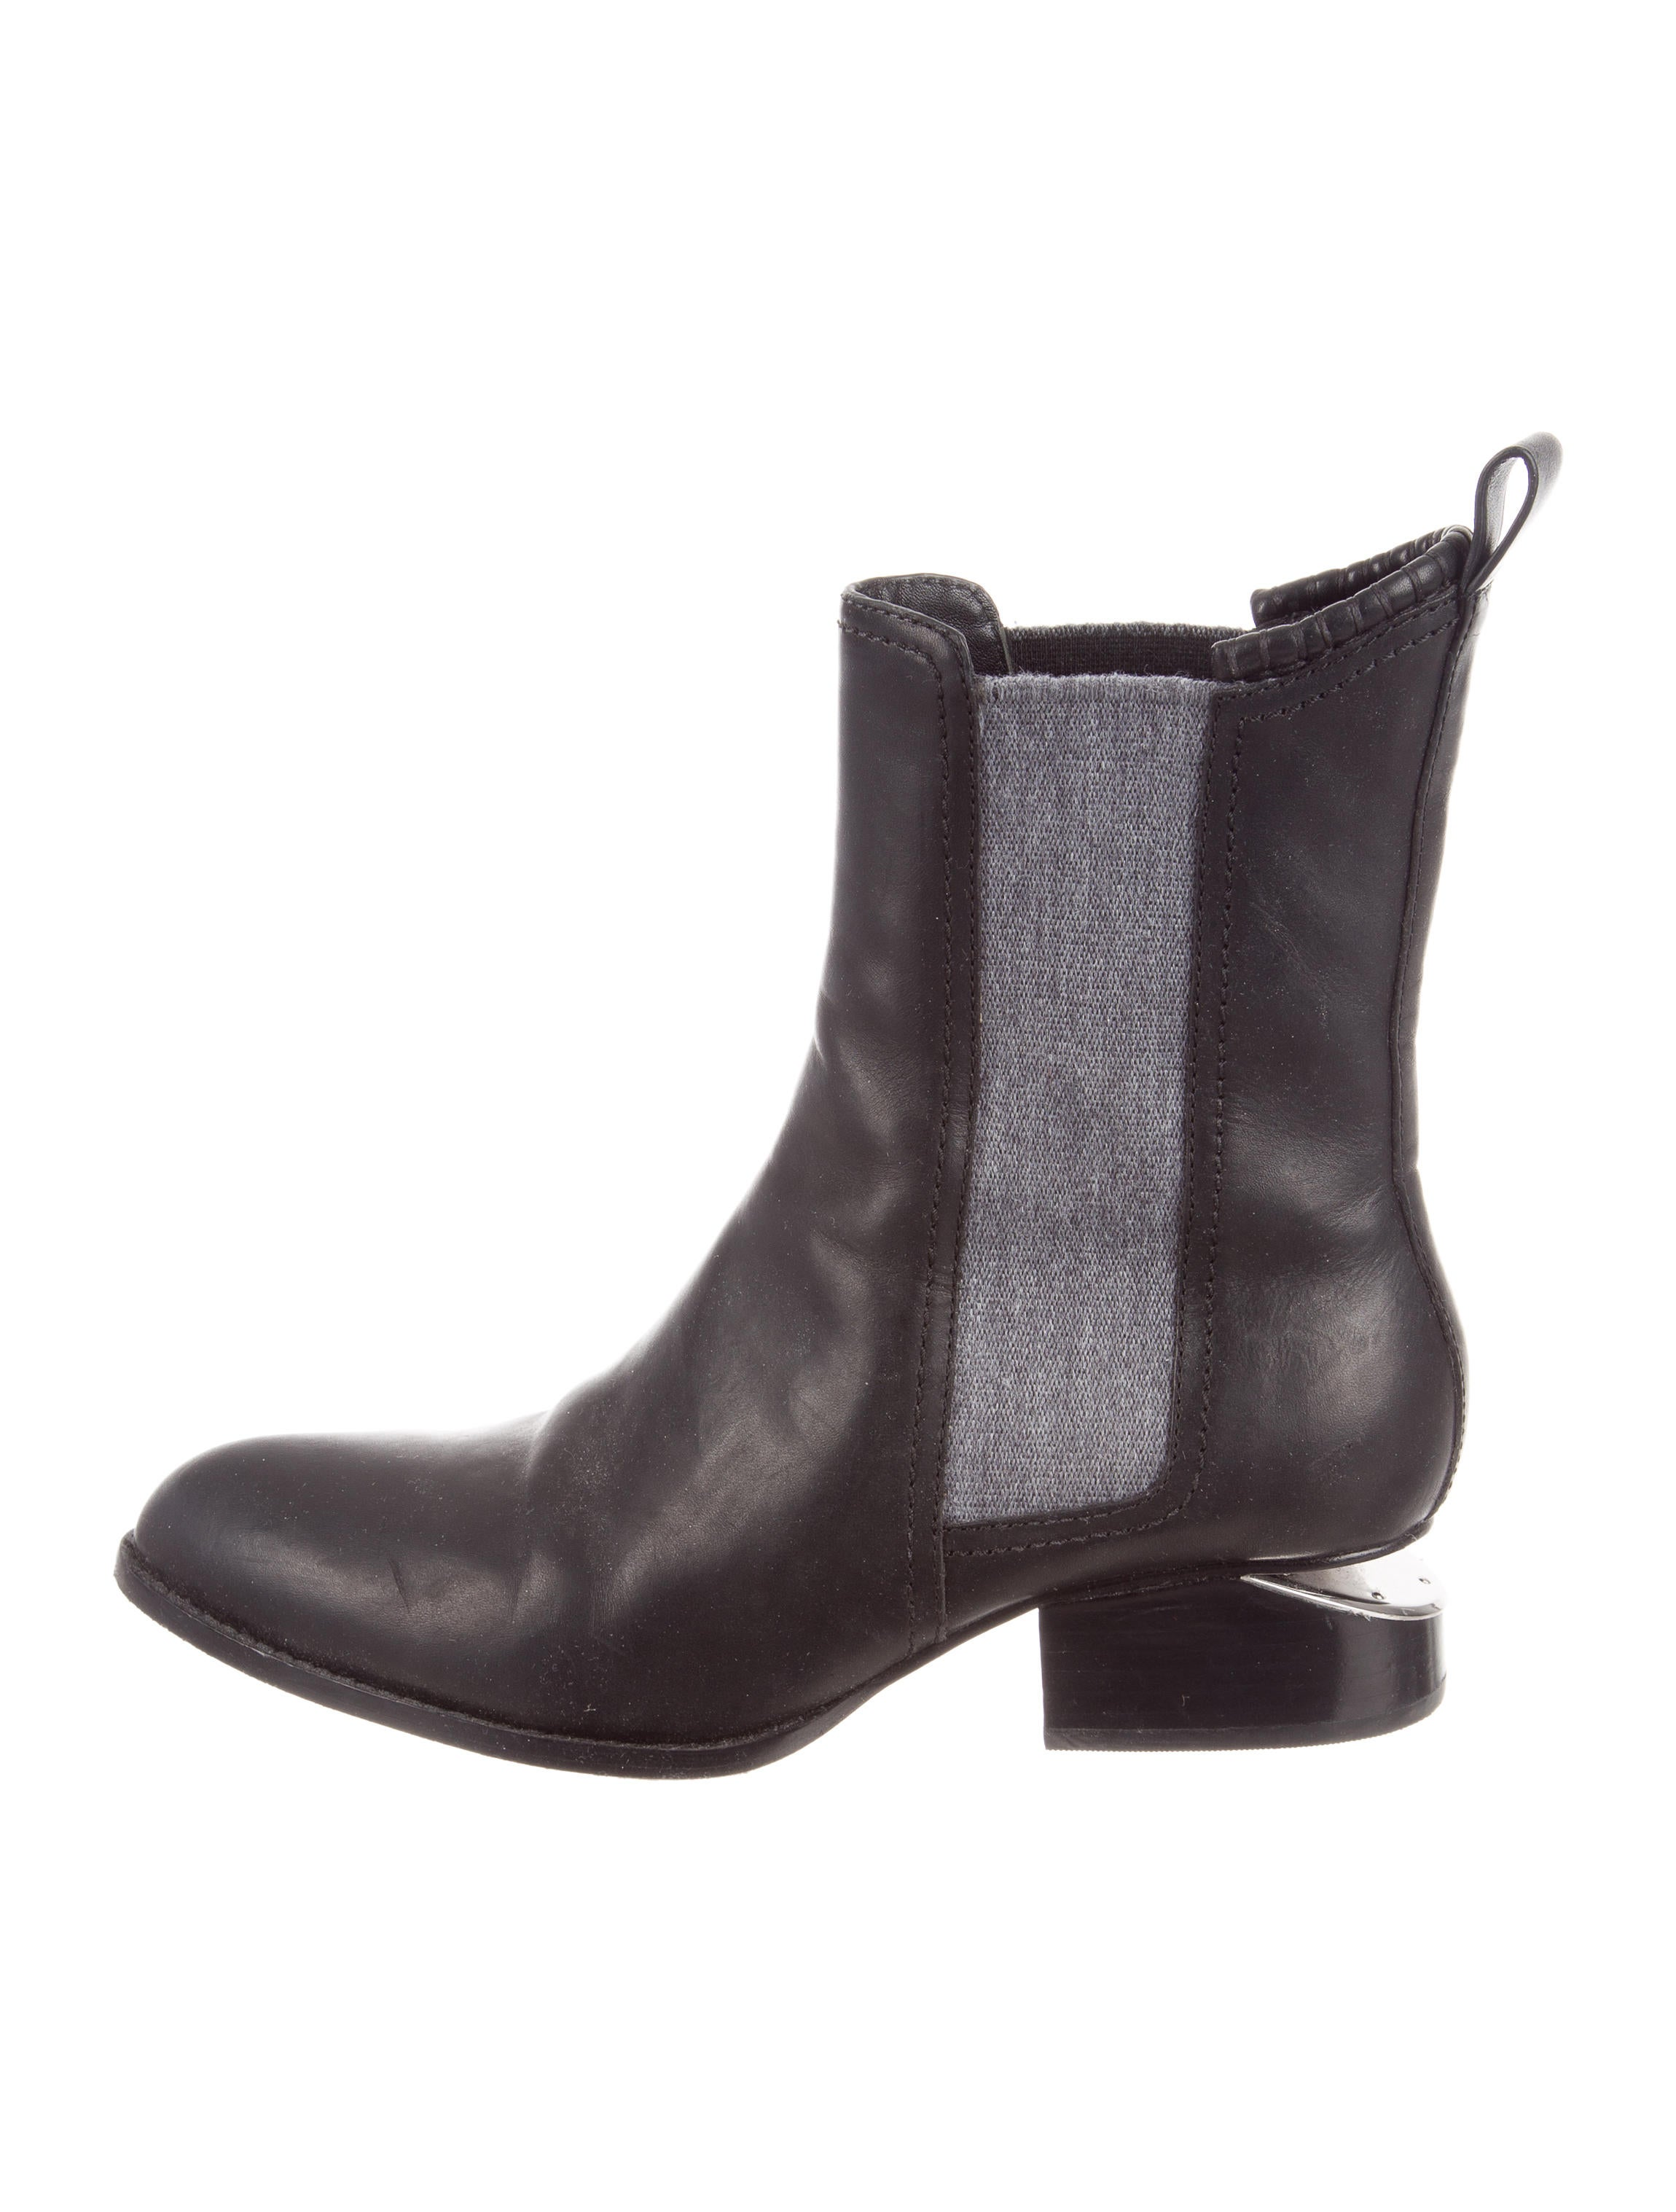 Alexander Wang Round-Toe Ankle Boots free shipping factory outlet 0PdYobn